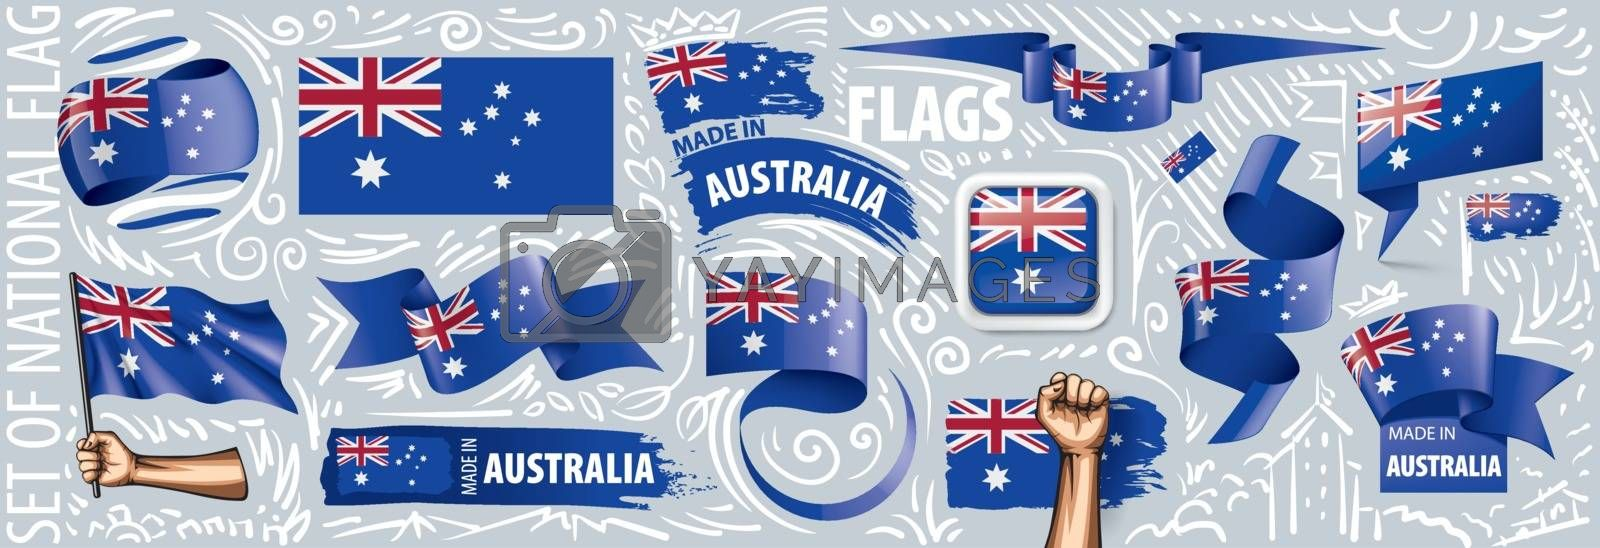 Vector set of the national flag of Australia in various creative designs.